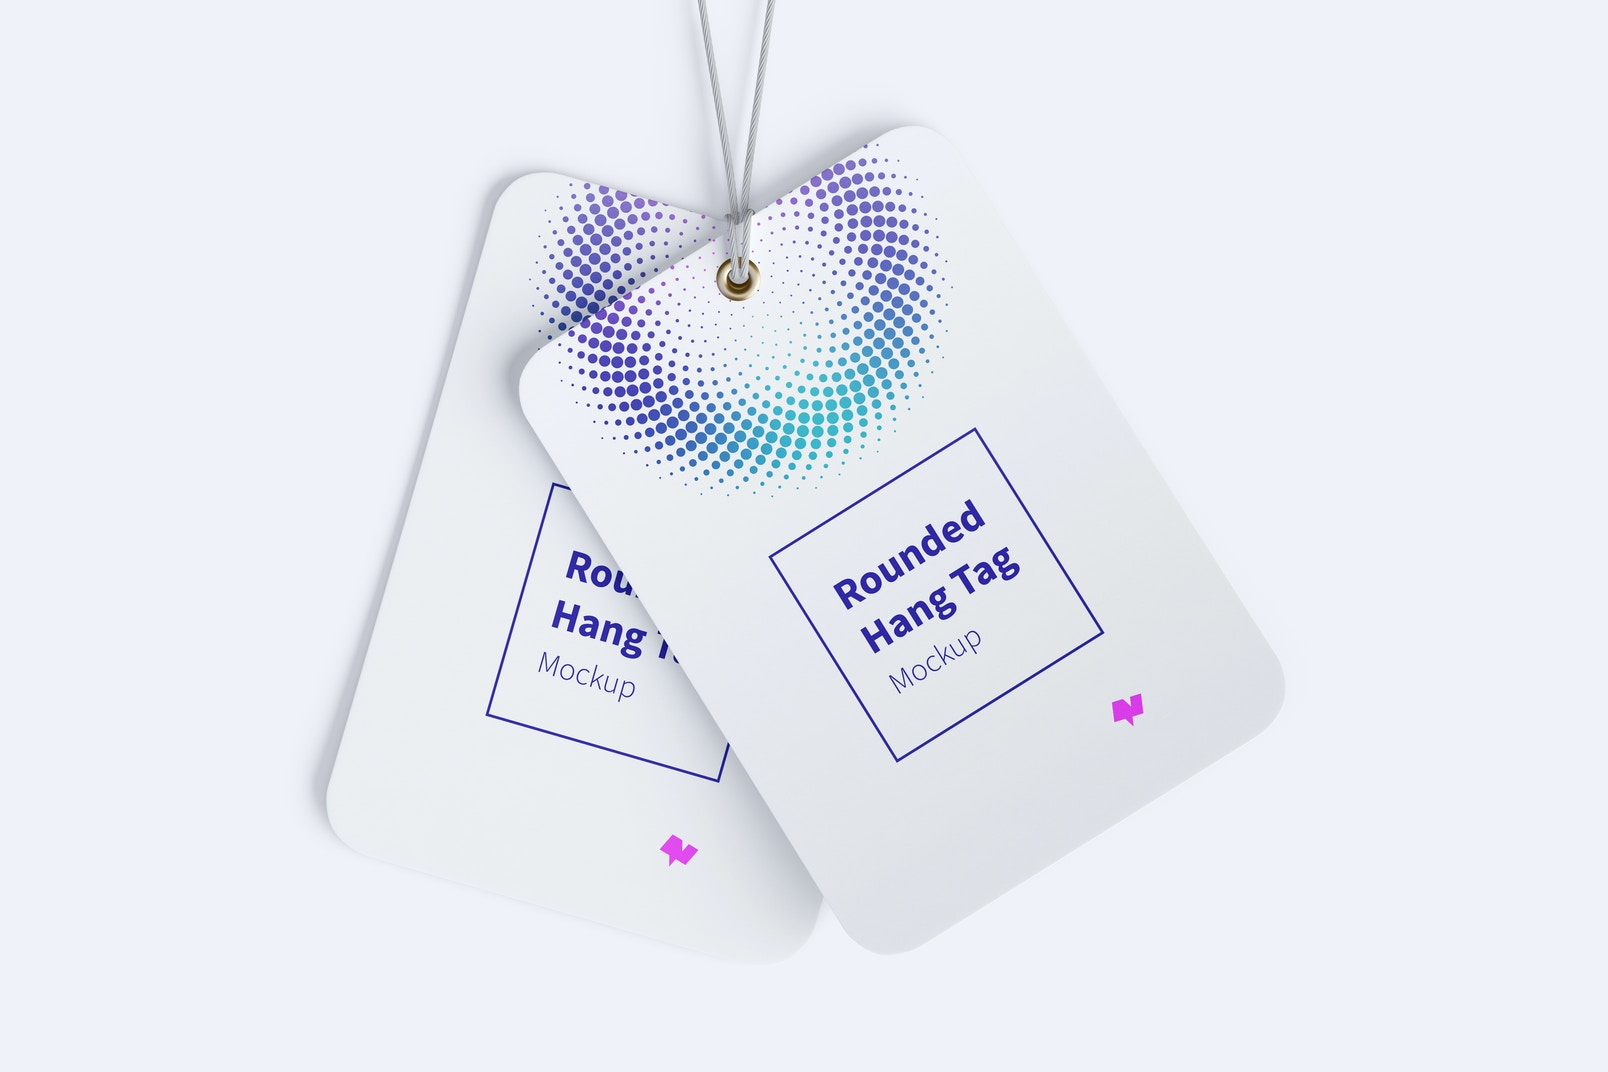 Rounded Hang Tags Mockup with String